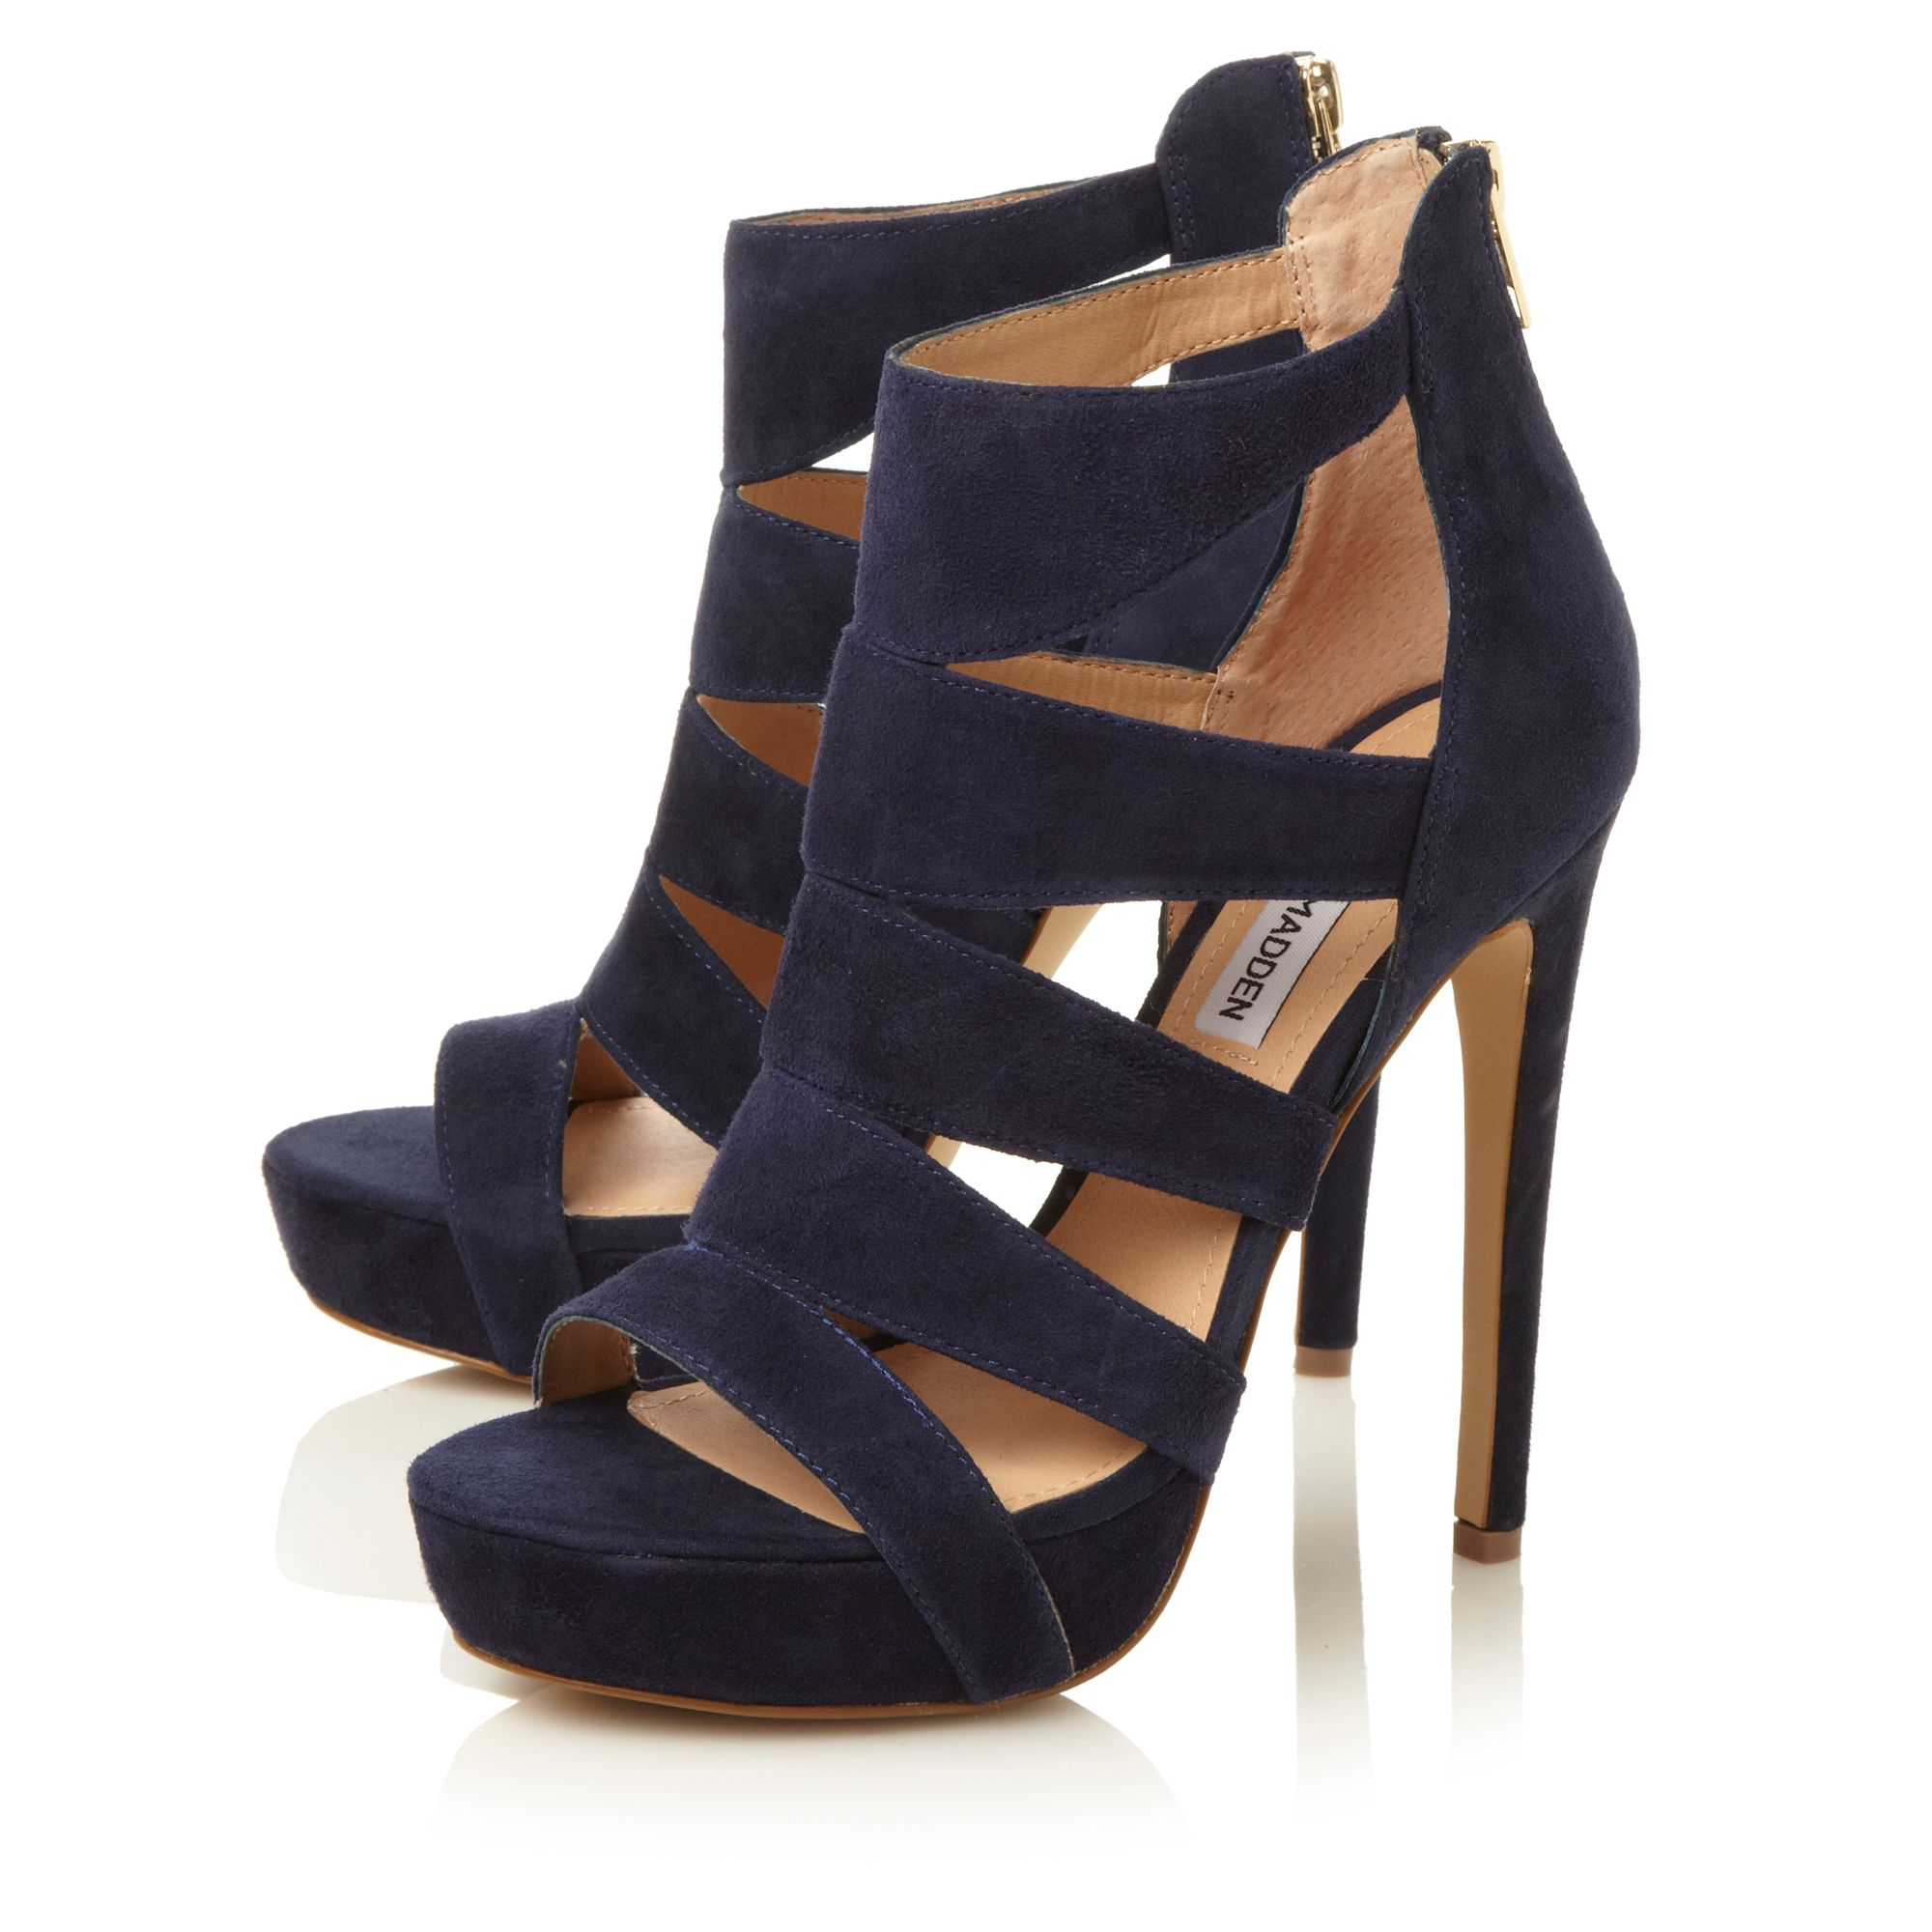 Steve madden Spycee Caged High Heel Sandals in Blue | Lyst